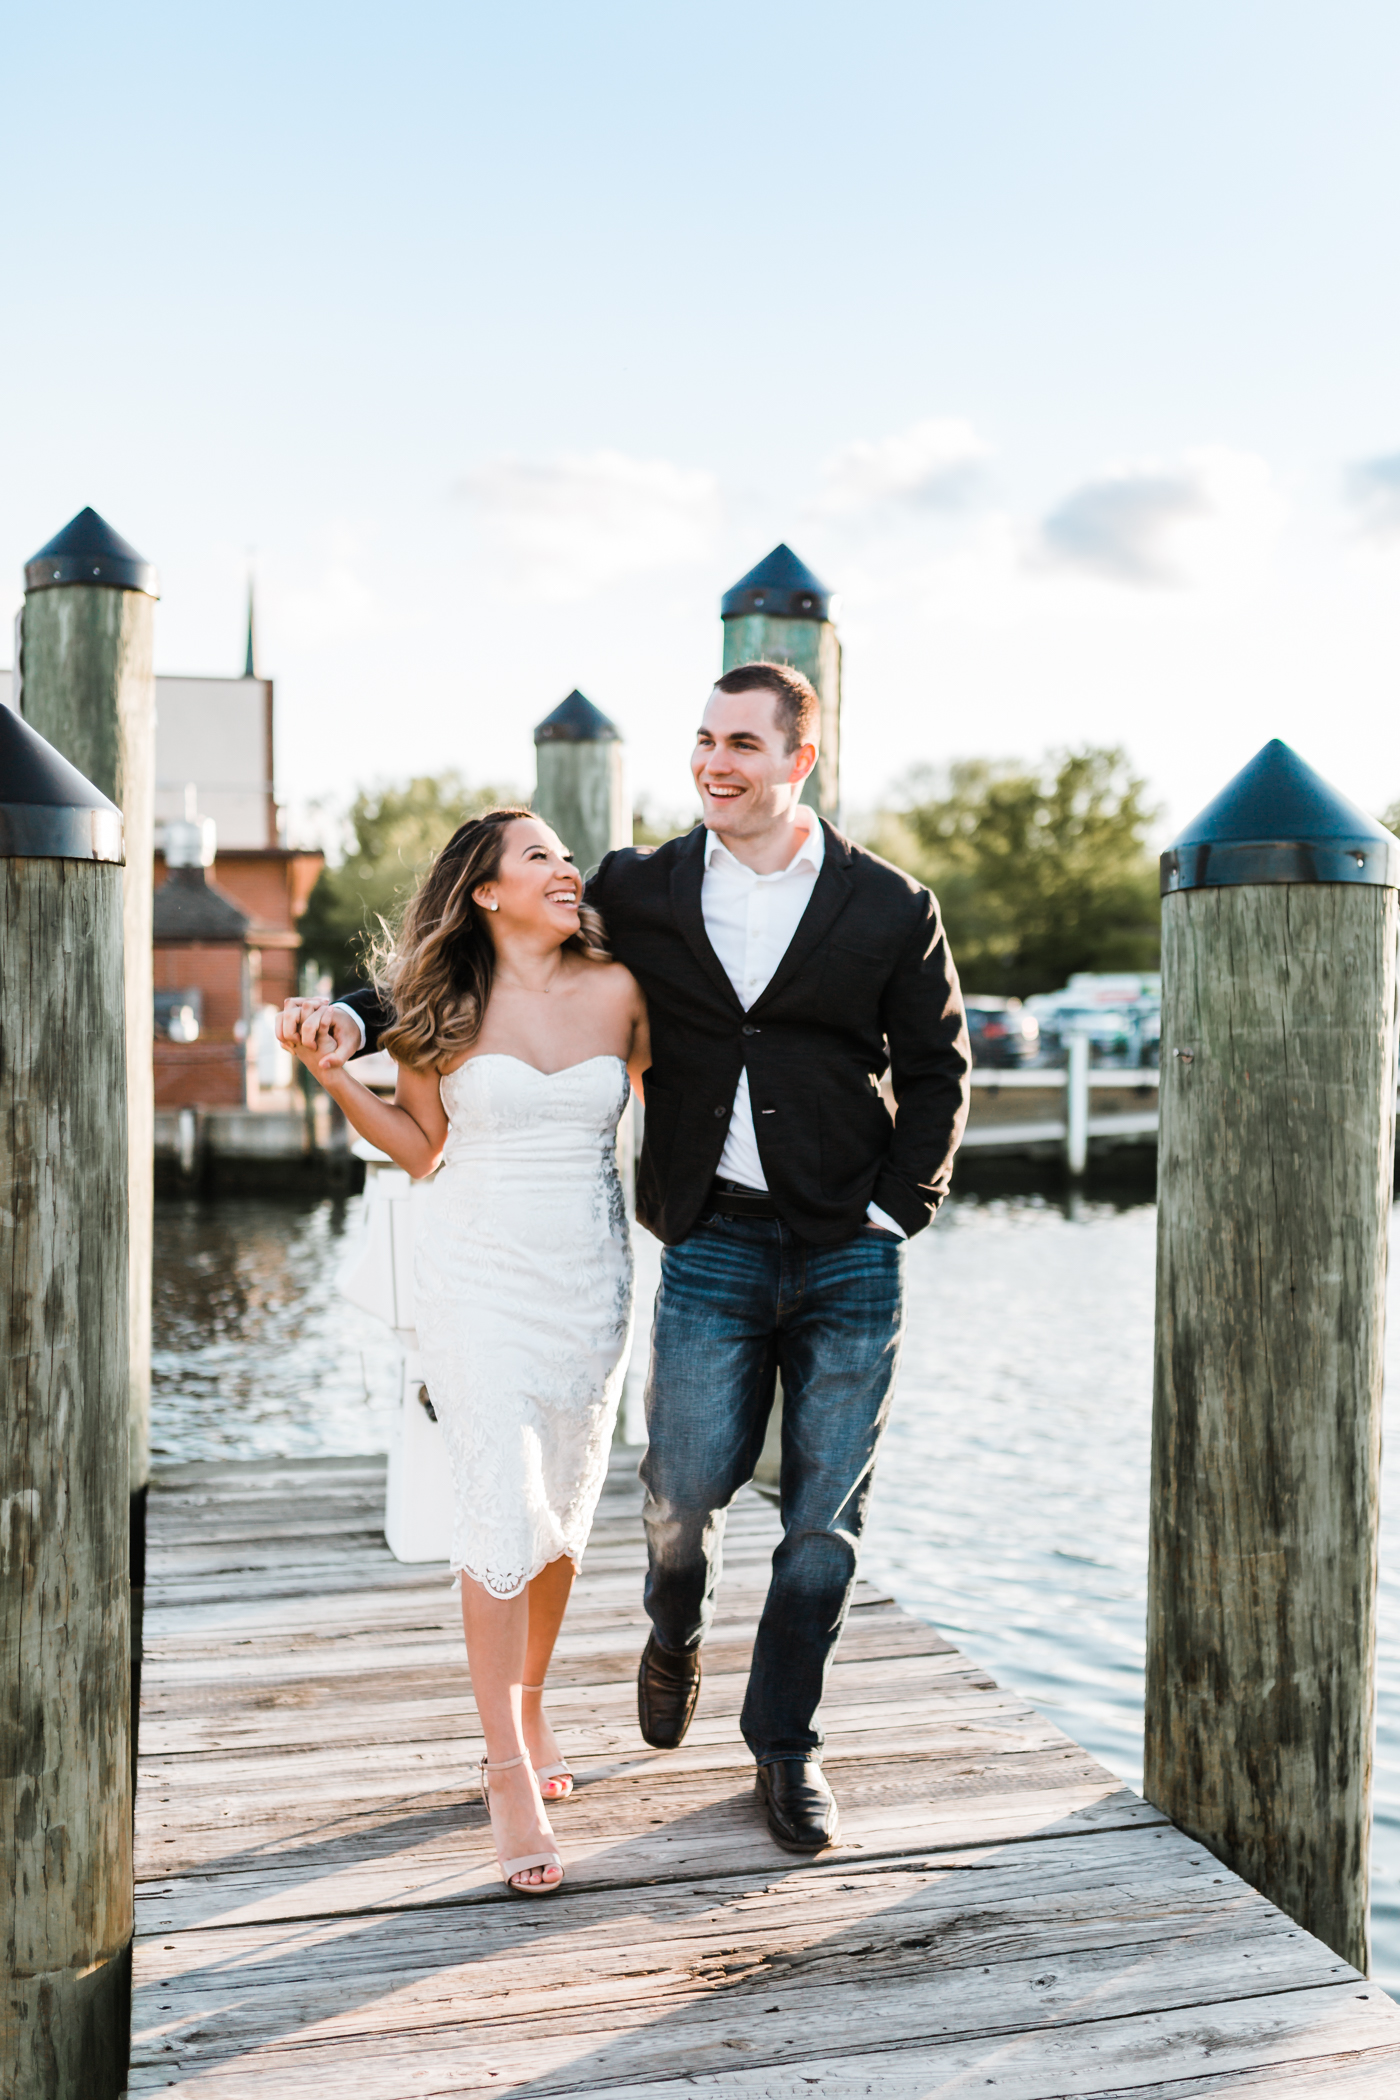 couple walking together and laughing in downtown annapolis on docks